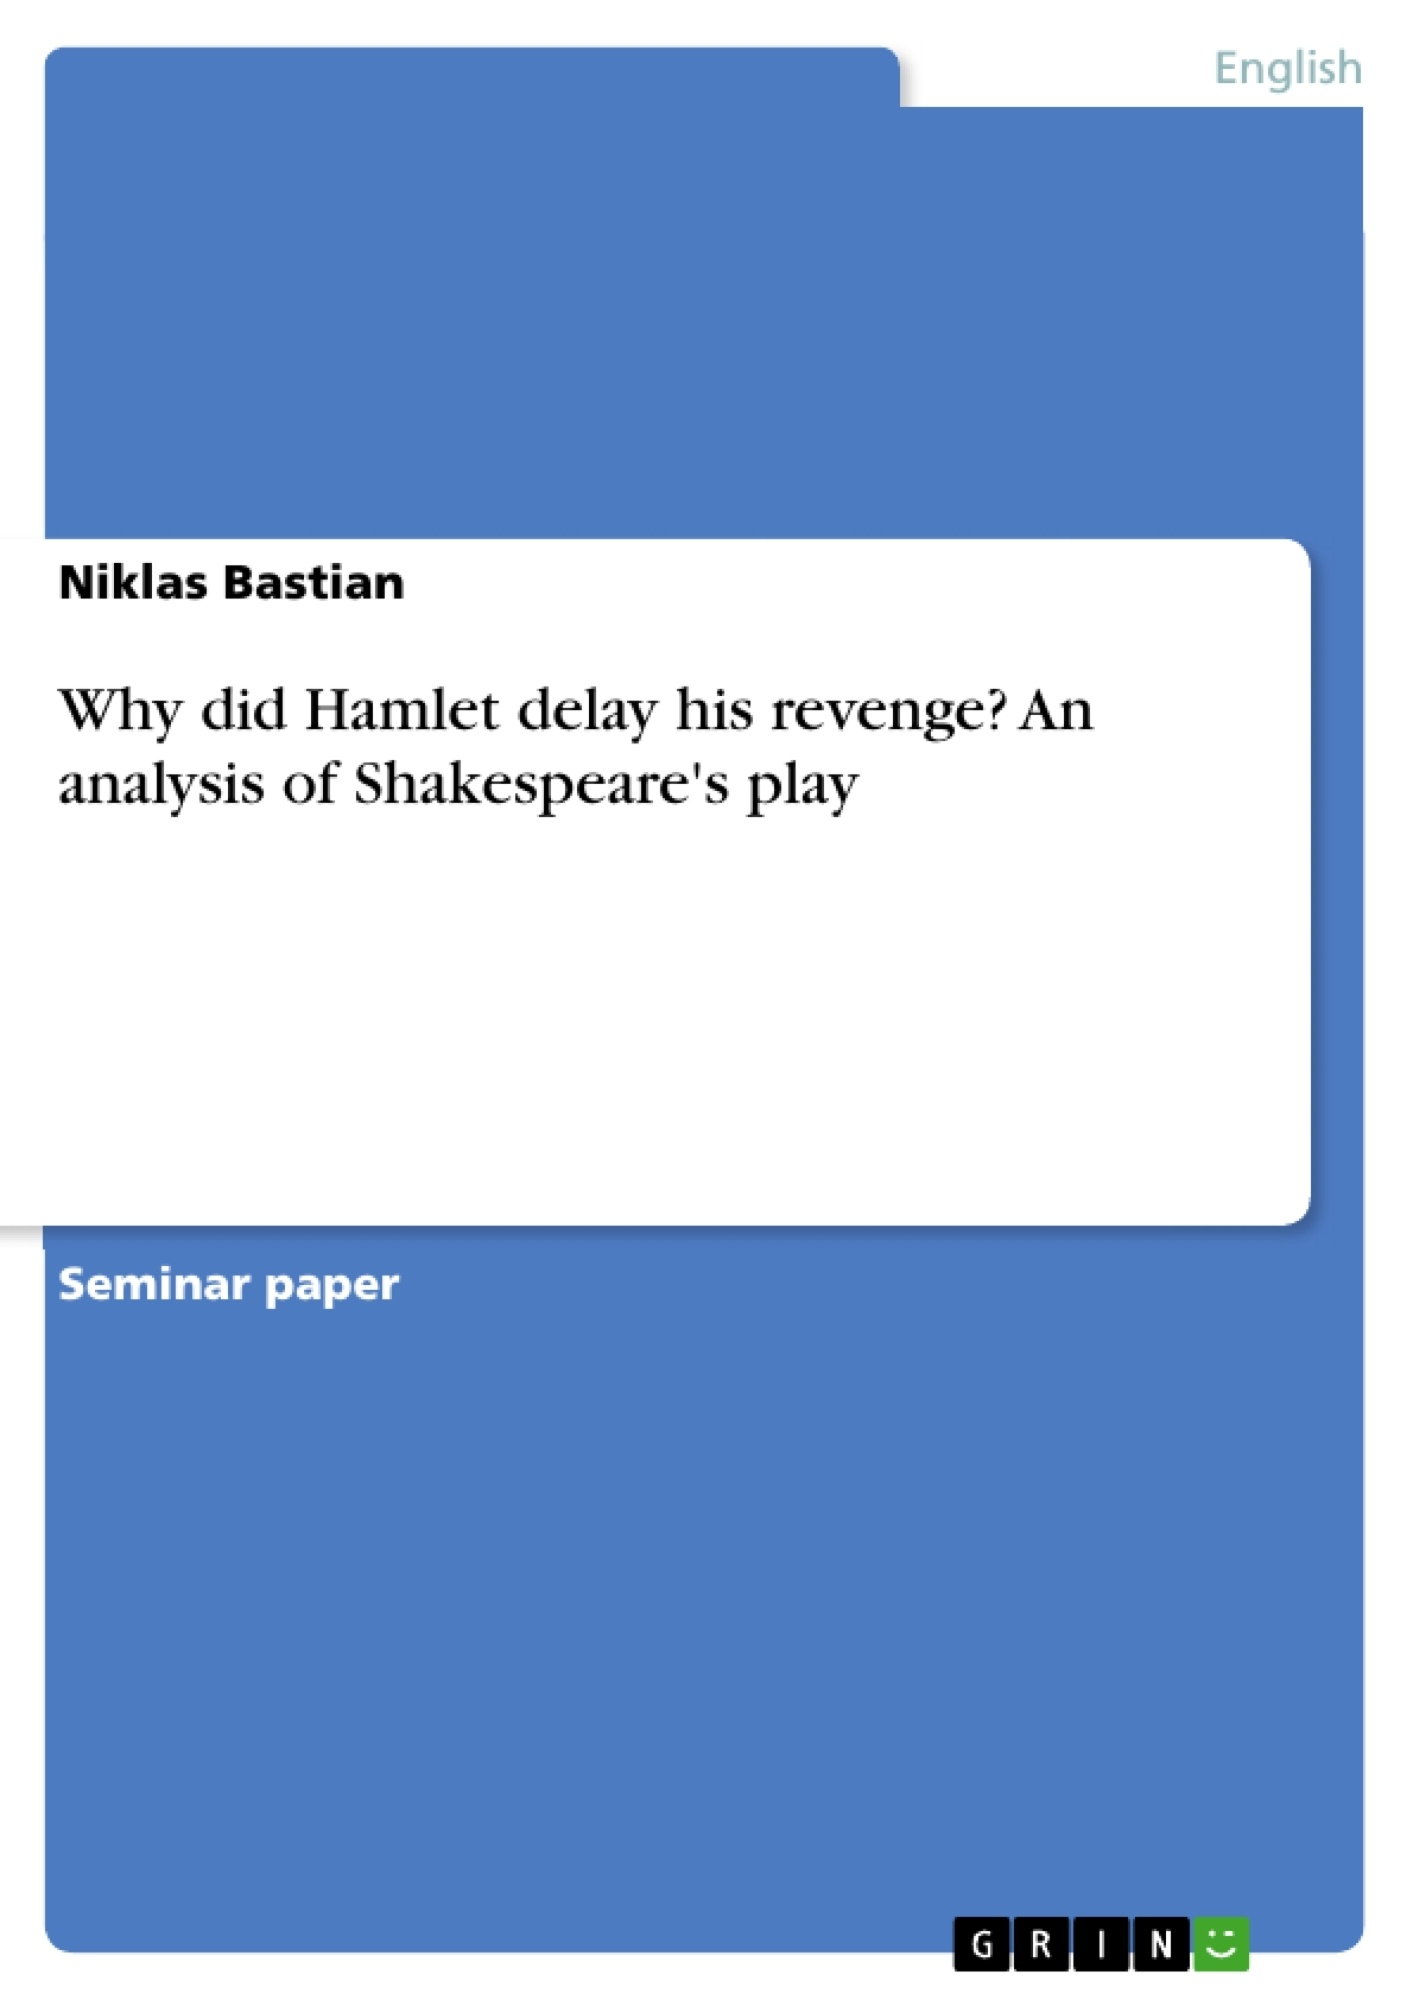 an analysis of the delaying of actions in hamlet a play by william shakespeare Get free homework help on william shakespeare's hamlet: play summary, scene summary and analysis and original text, quotes, essays, character analysis, and filmography courtesy of cliffsnotes.